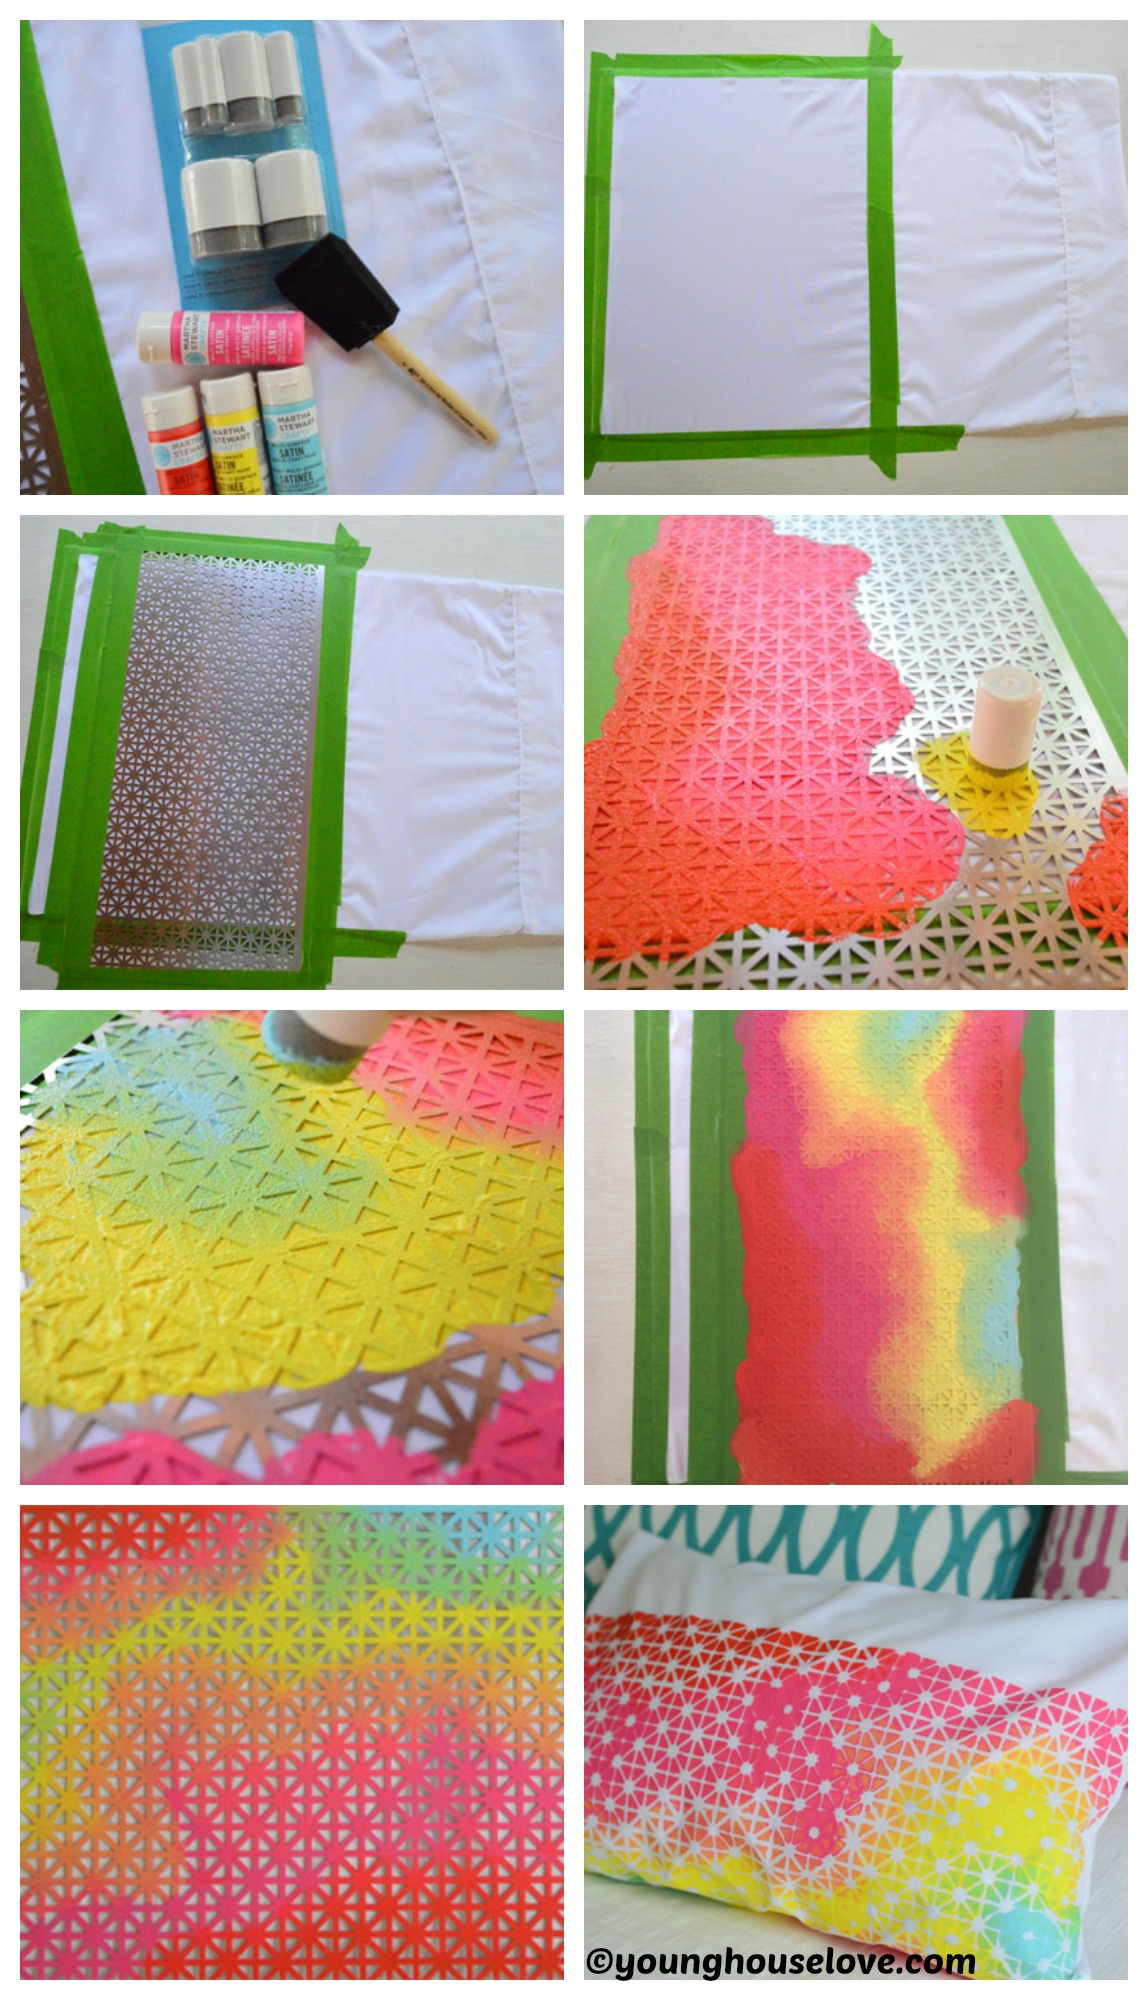 How to make Geometric Fabric Stencil